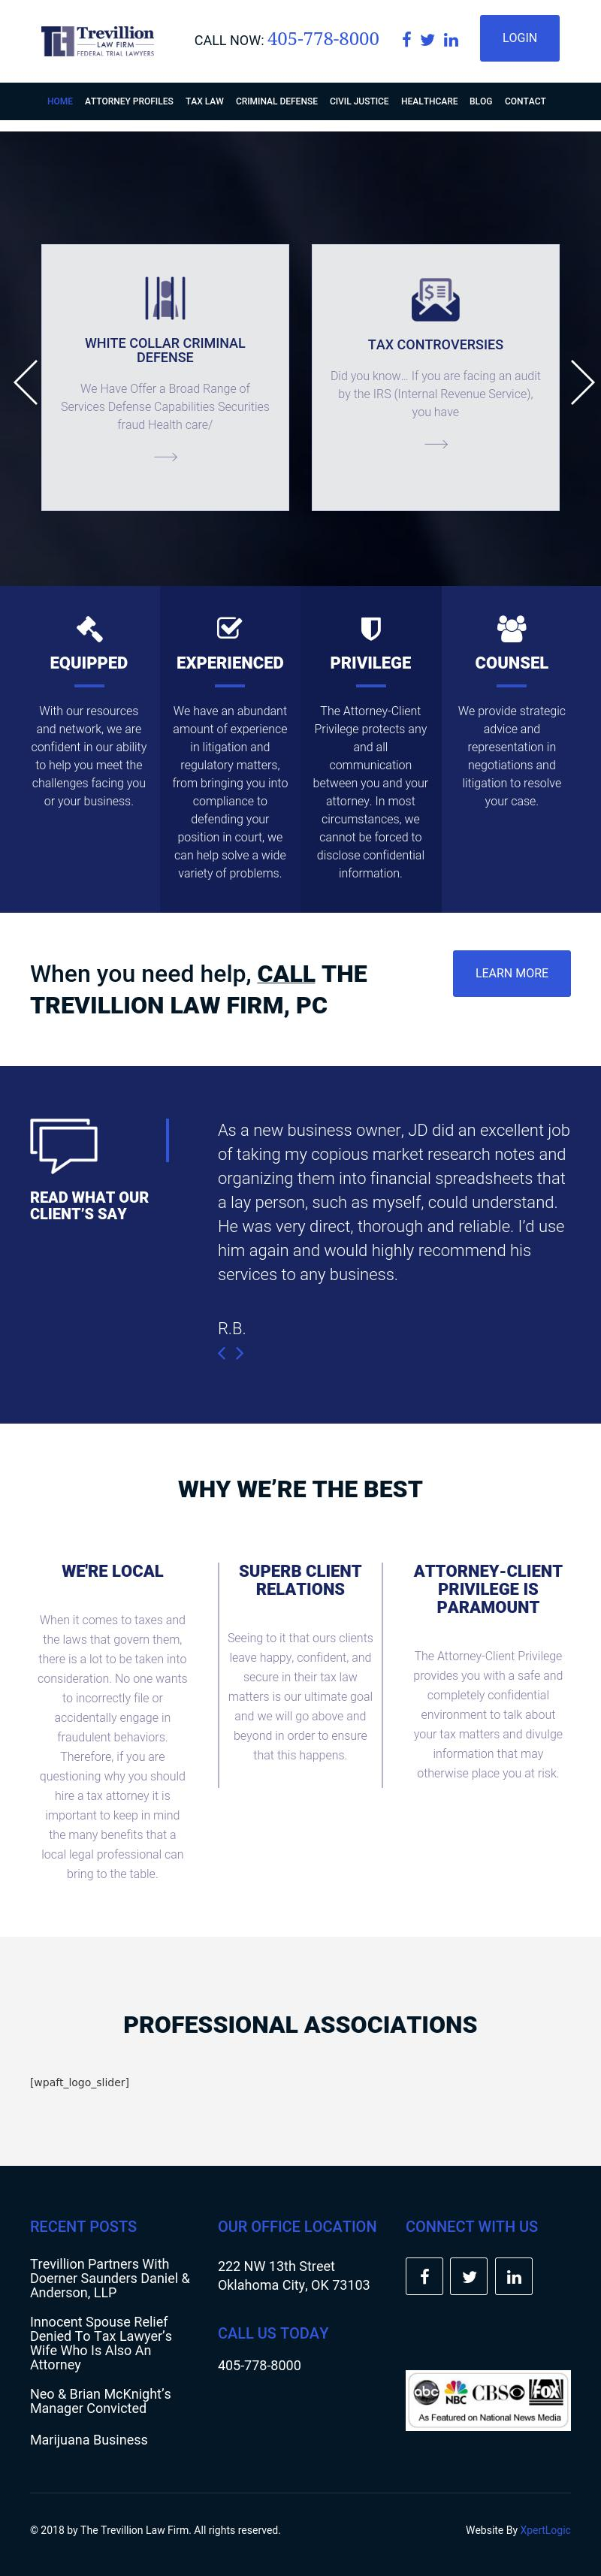 The Trevillion Law Firm - Oklahoma City OK Lawyers